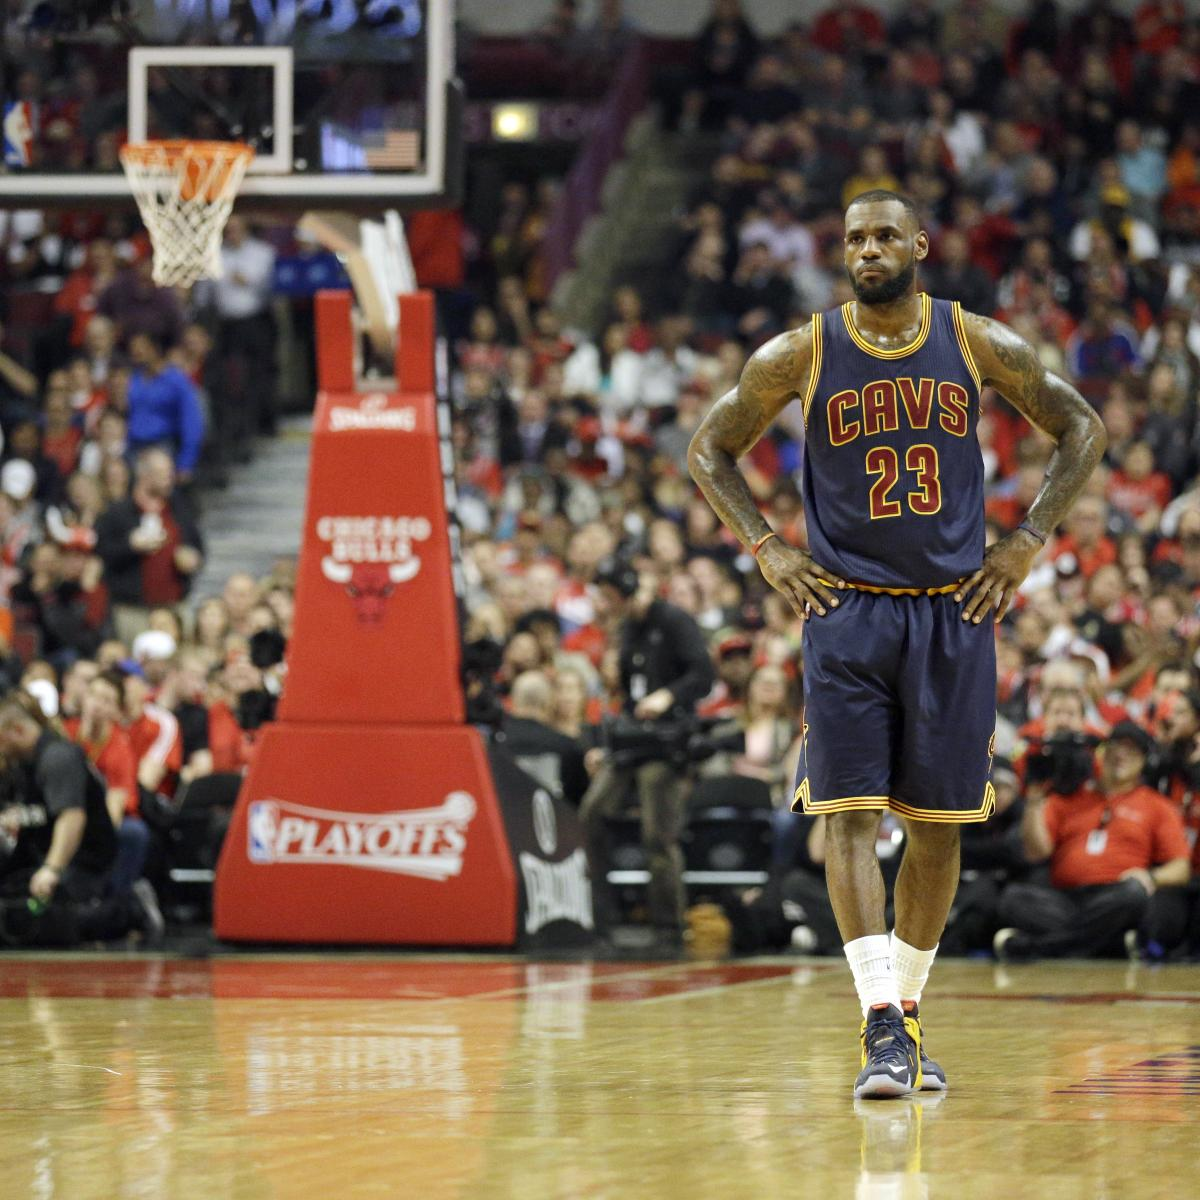 NBA Playoff Schedule 2015: Dates, TV Info For Conference